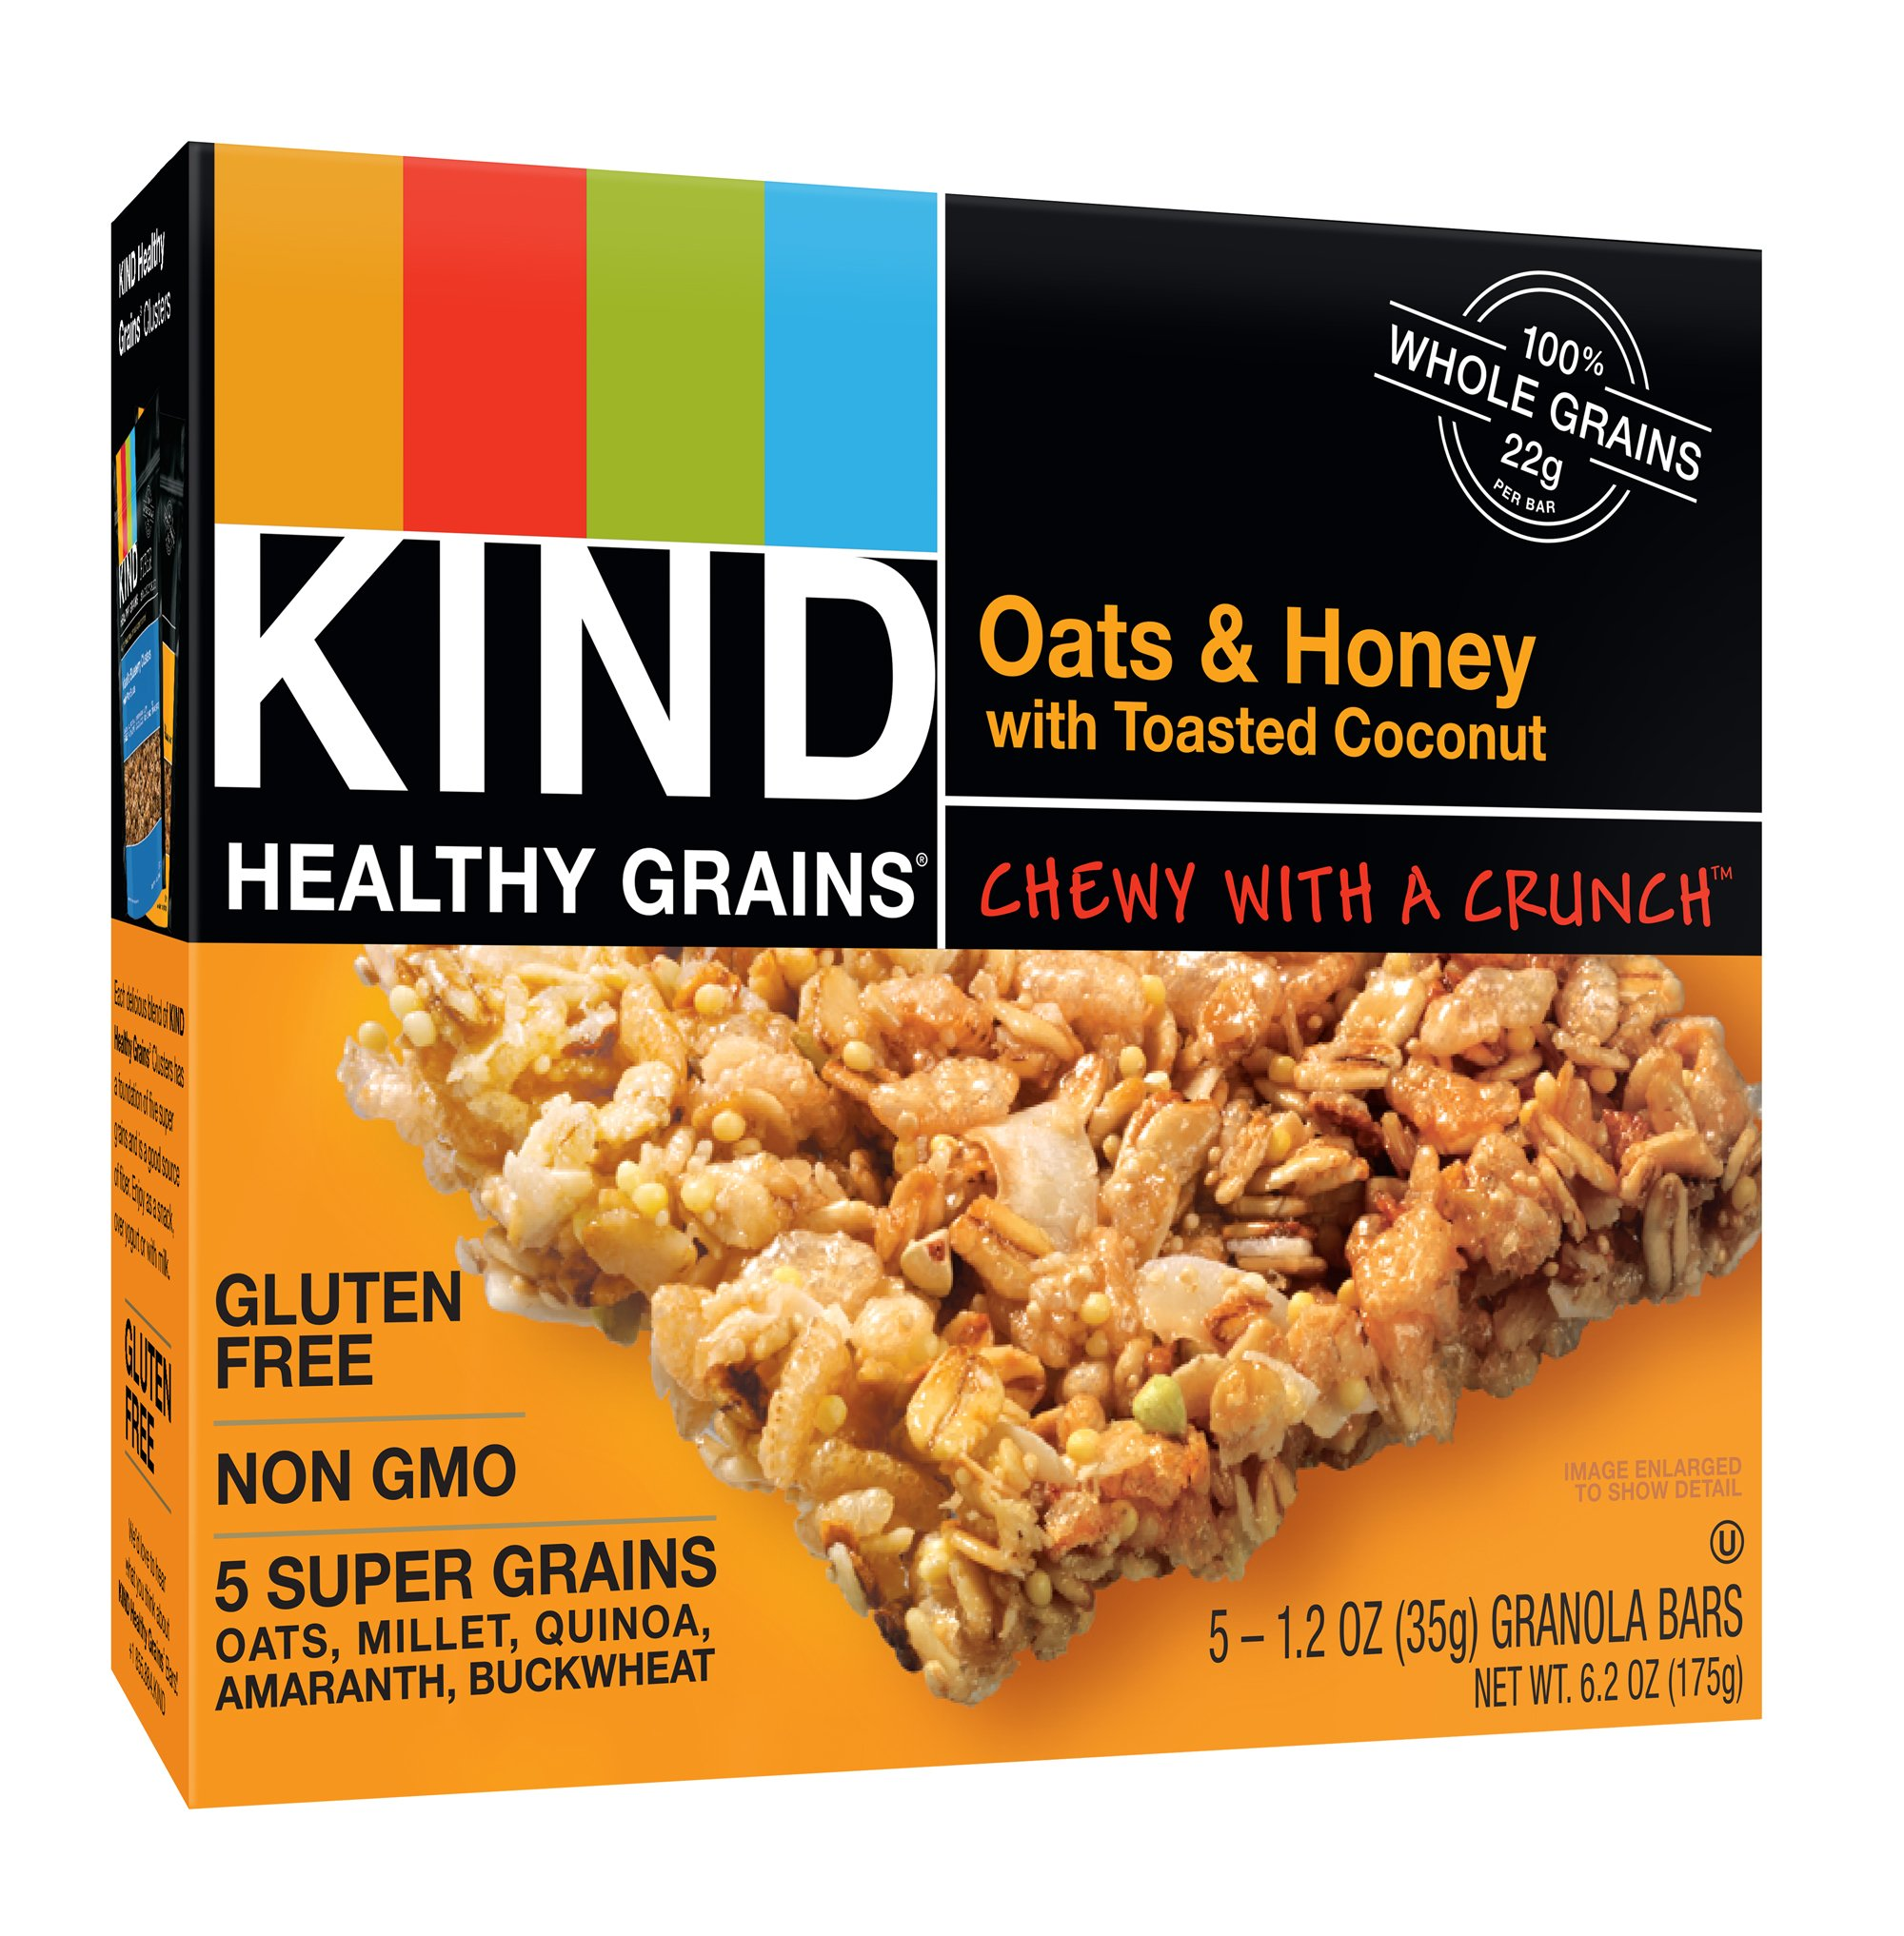 KIND Healthy Grains Bars, Oats & Honey with Toasted Coconut, Gluten Free, 1.2oz, 5 Count (Pack of 3)